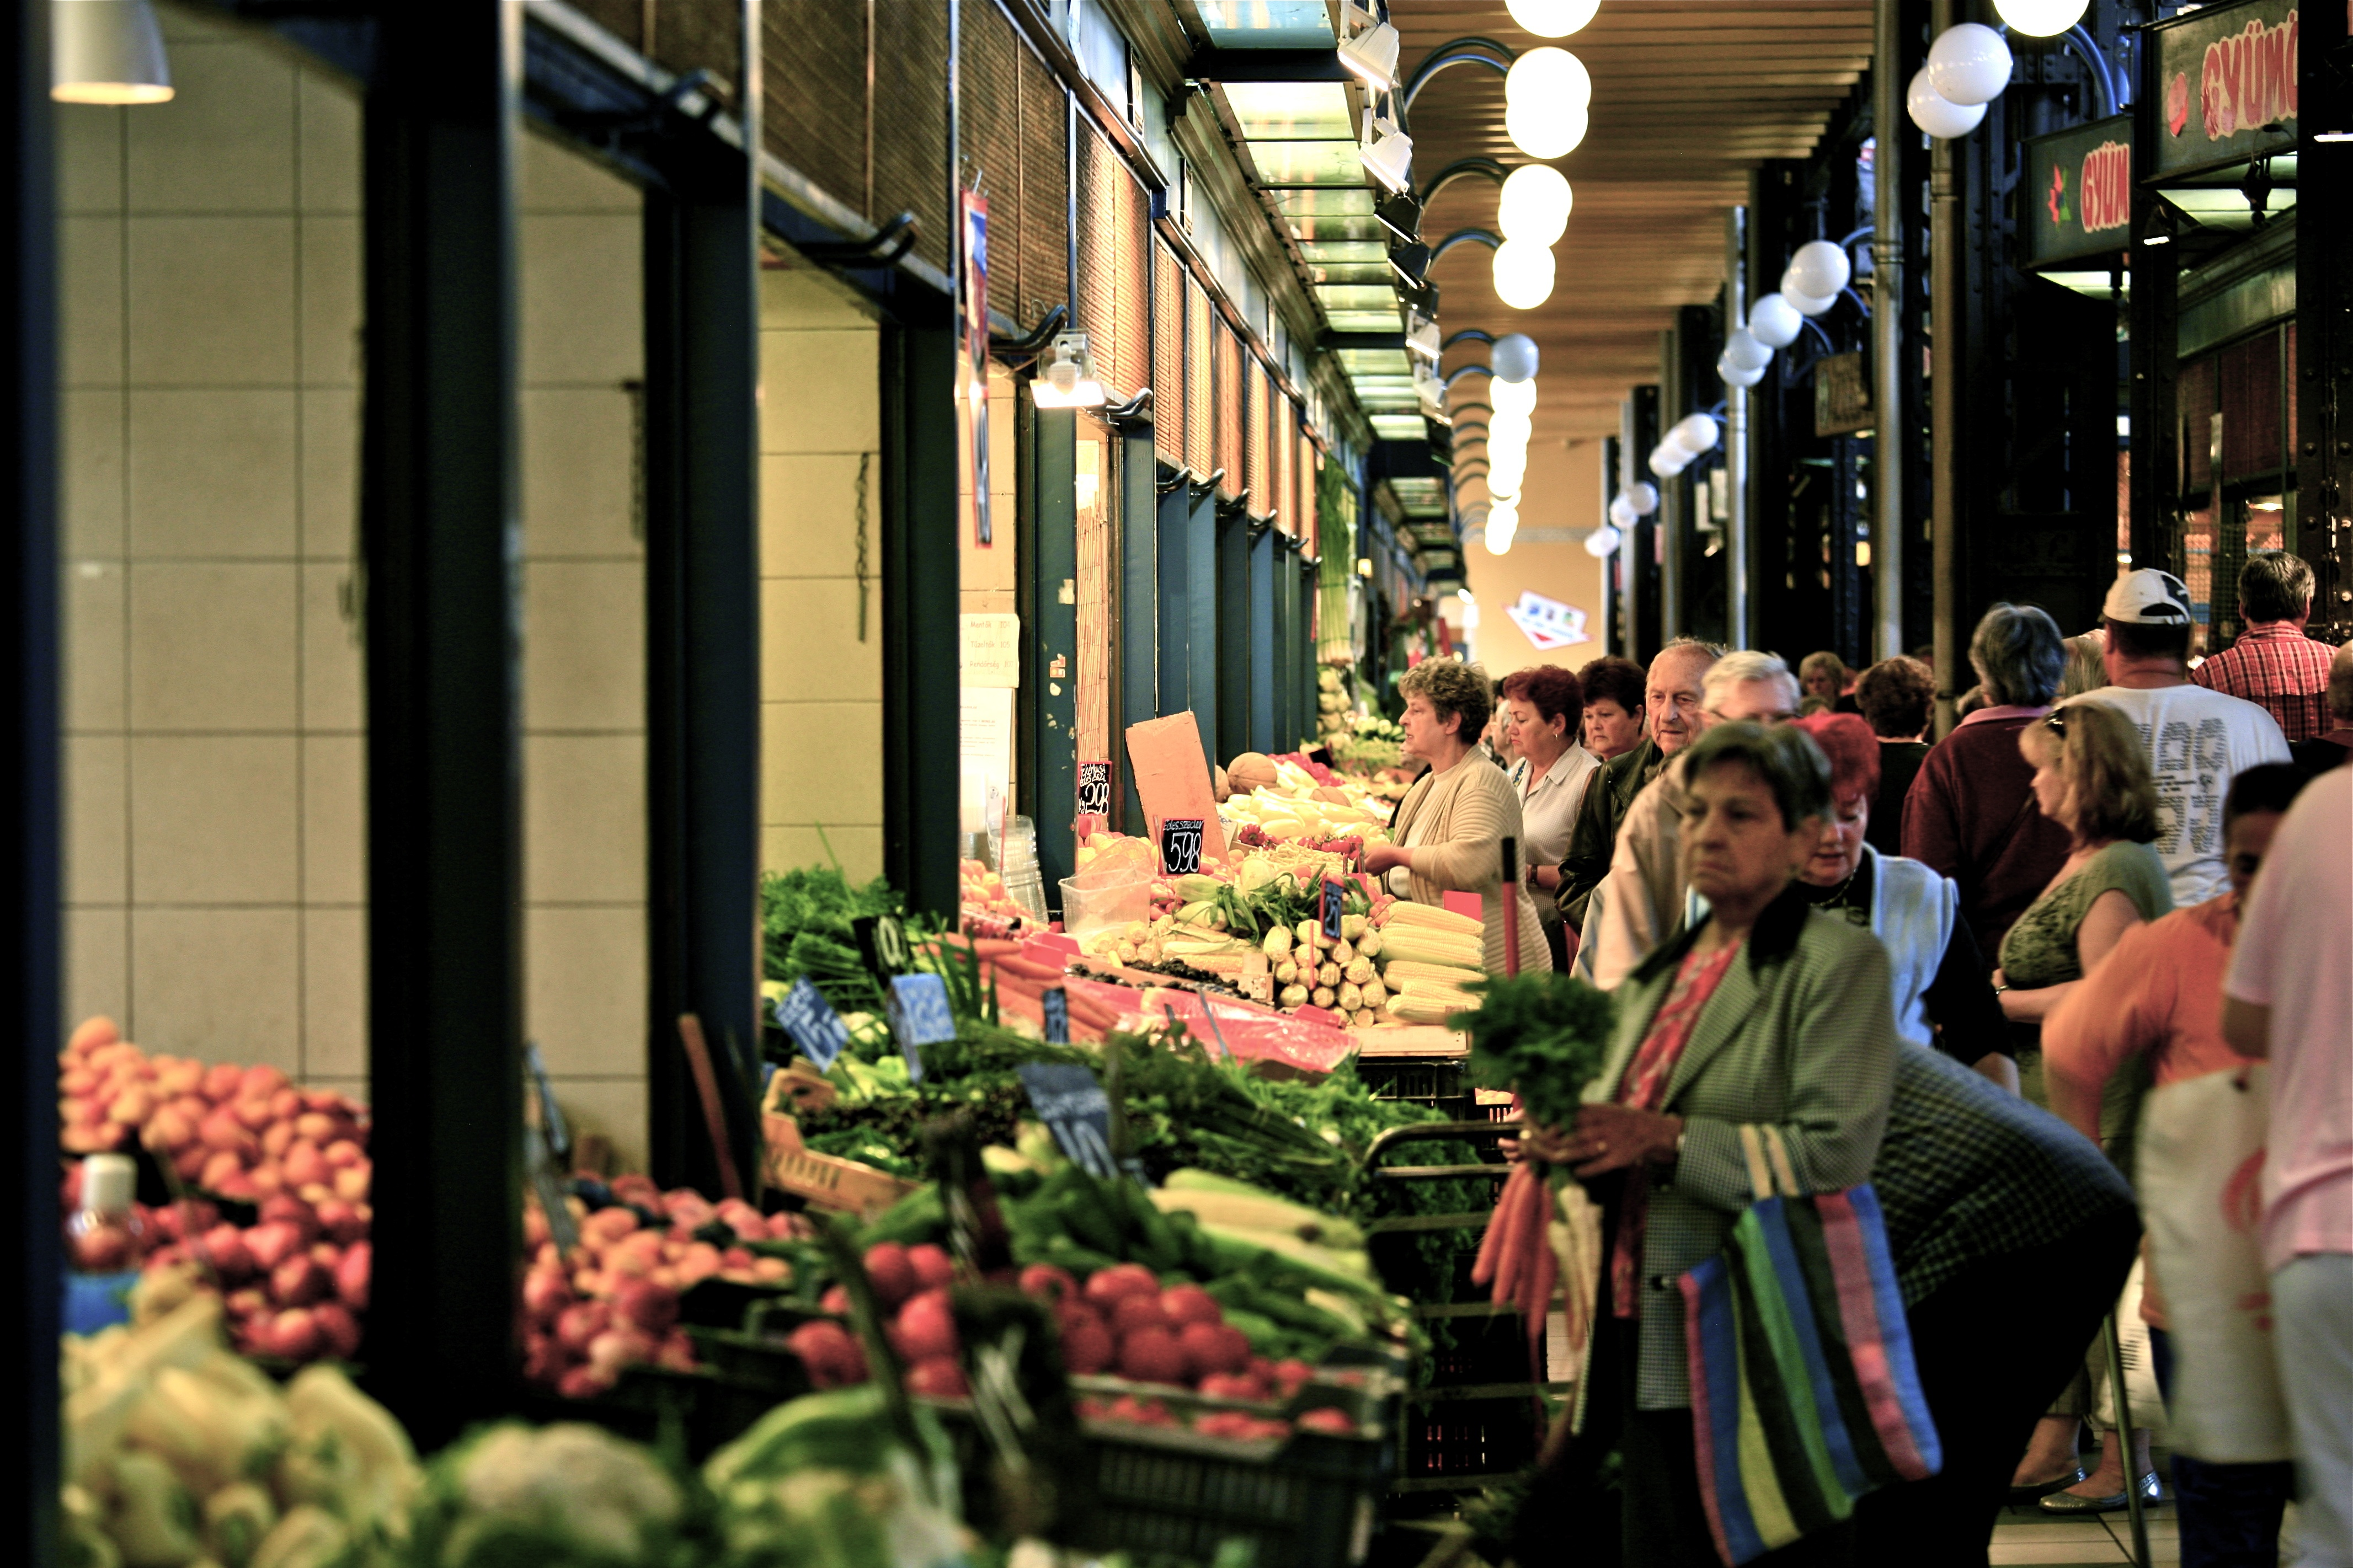 File:Buying in the Central Market (6003444575).jpg - Wikimedia Commons